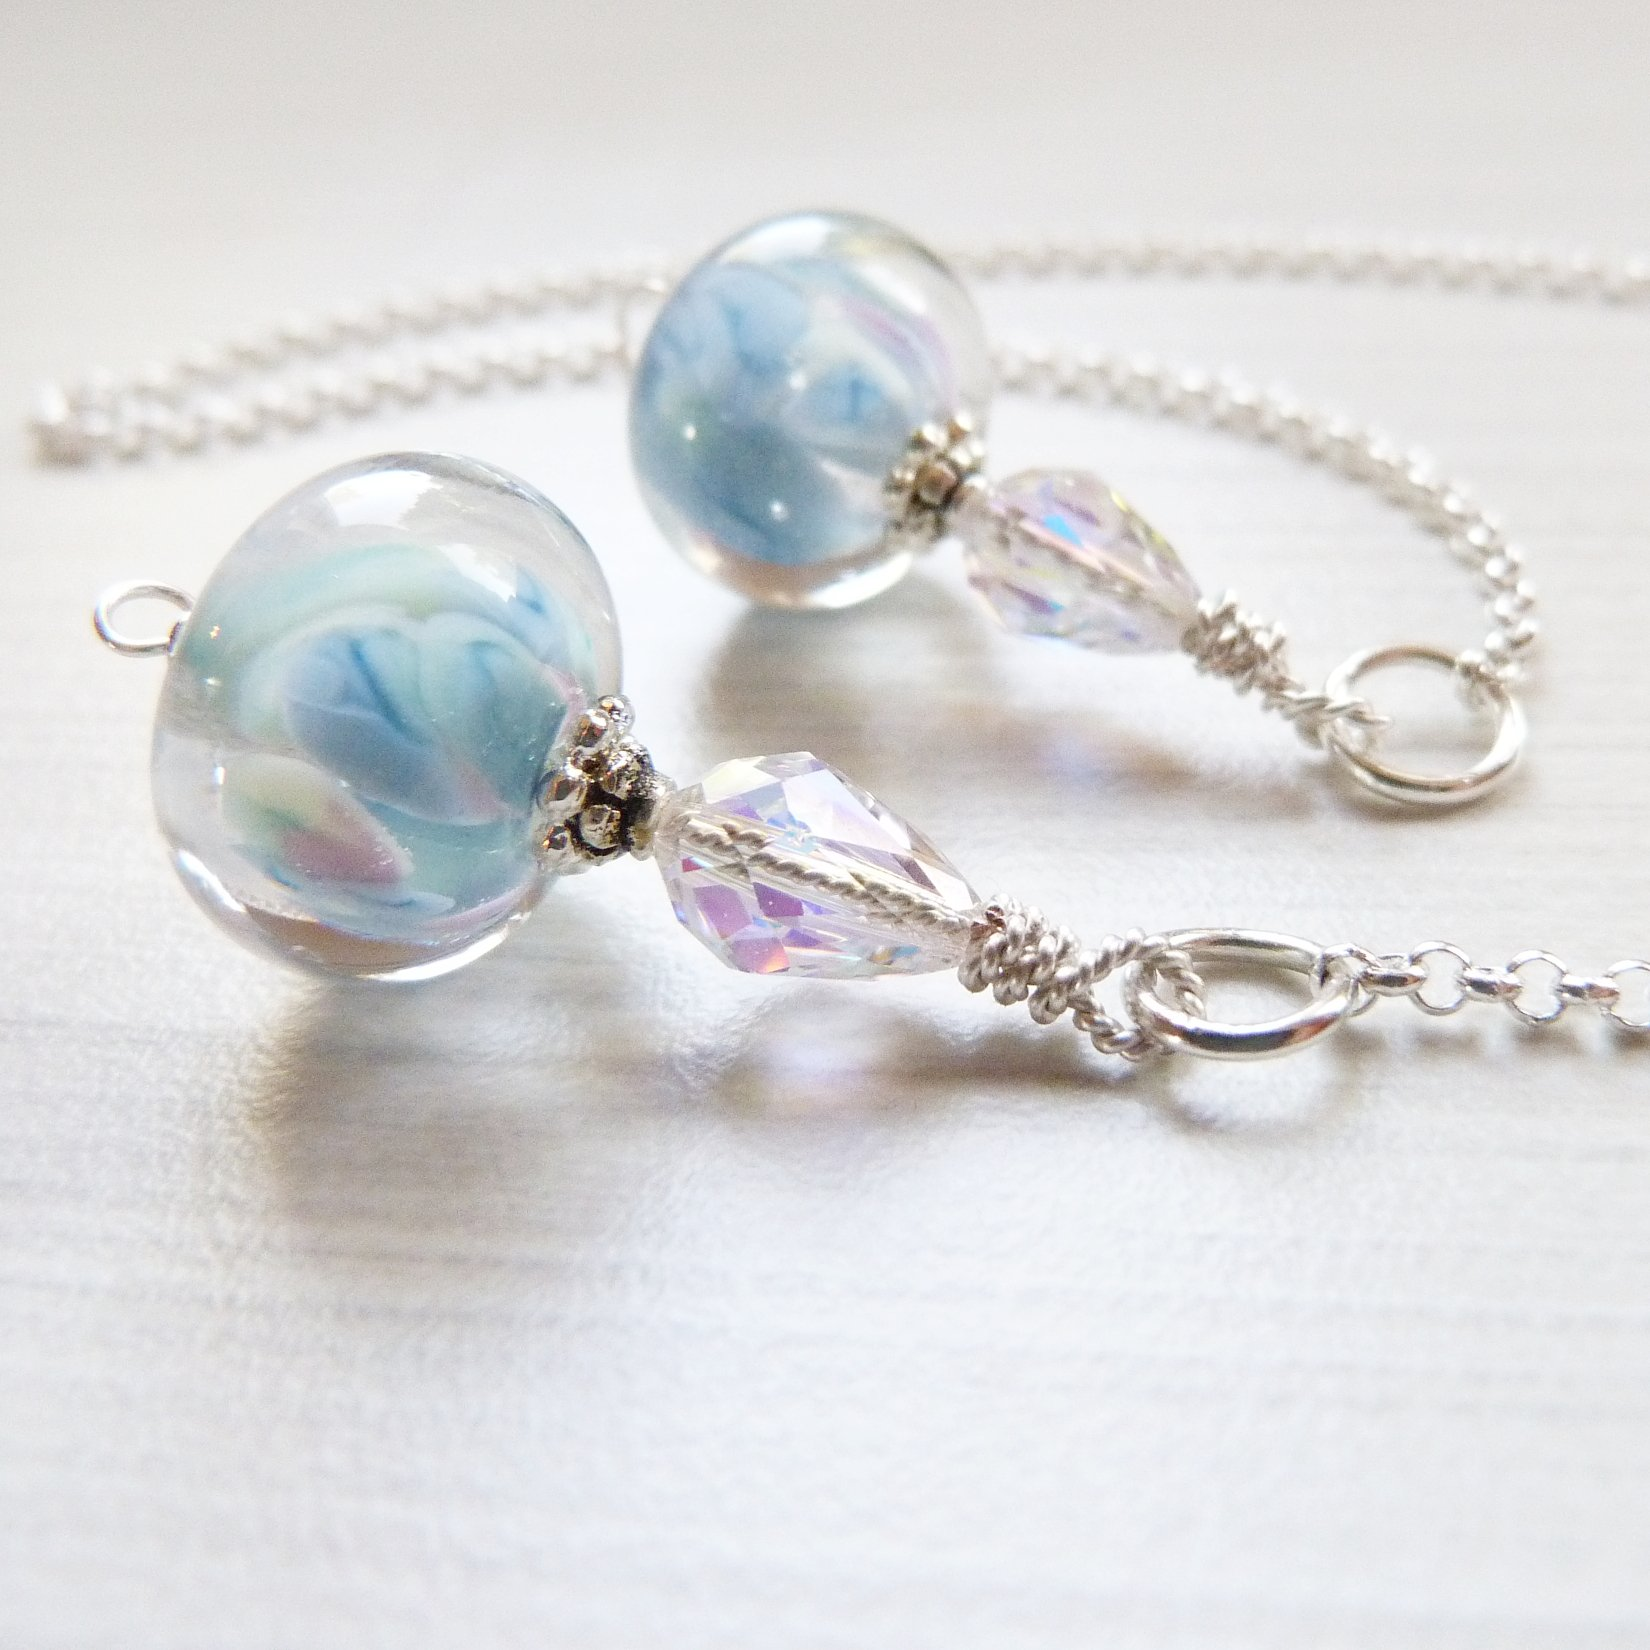 Ethereal Handmade Collection